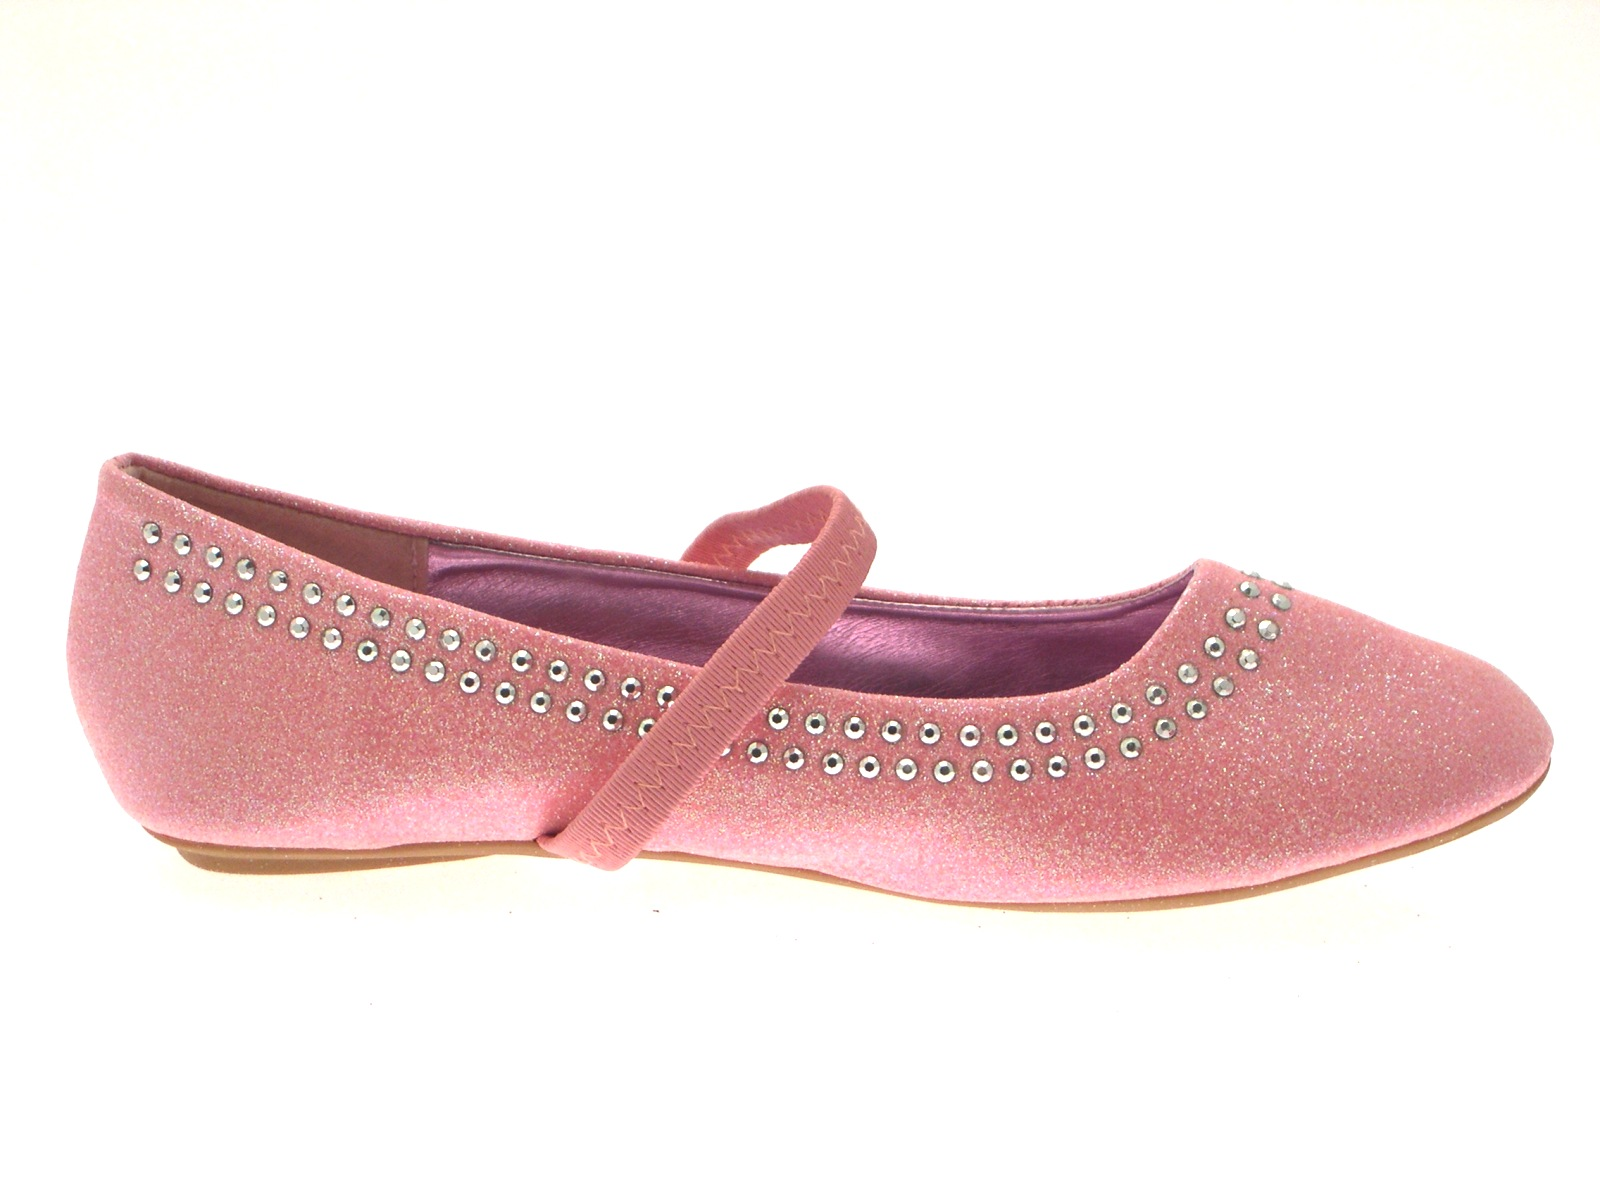 flat shoes for girls - photo #4